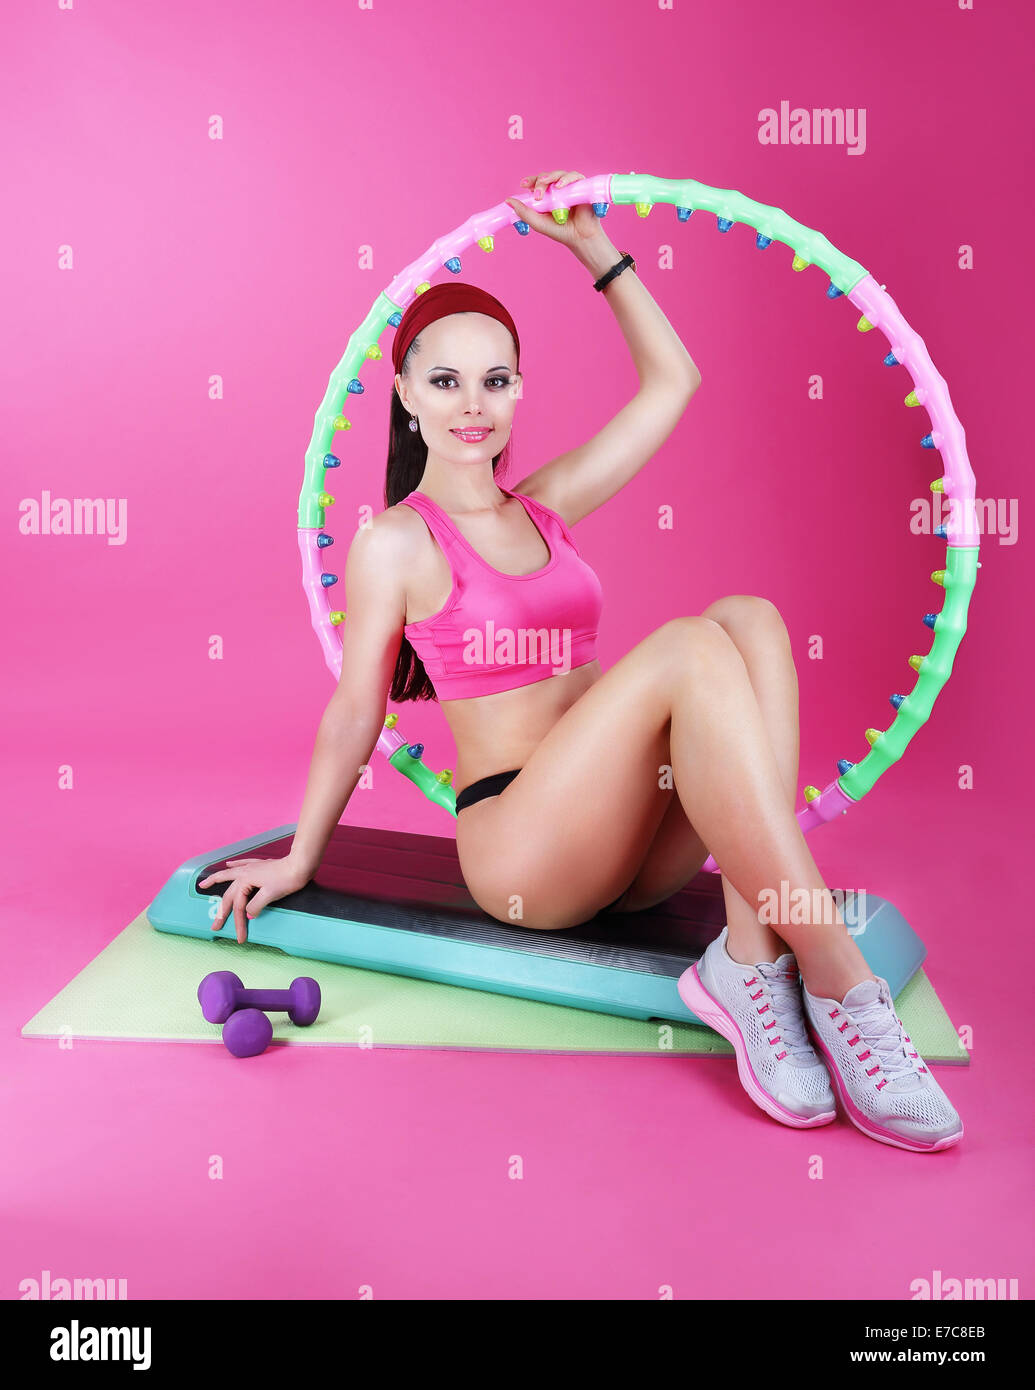 Healthy Lifestyle. Sporty Woman Sitting on Mat with Fitness Equipment - Stock Image